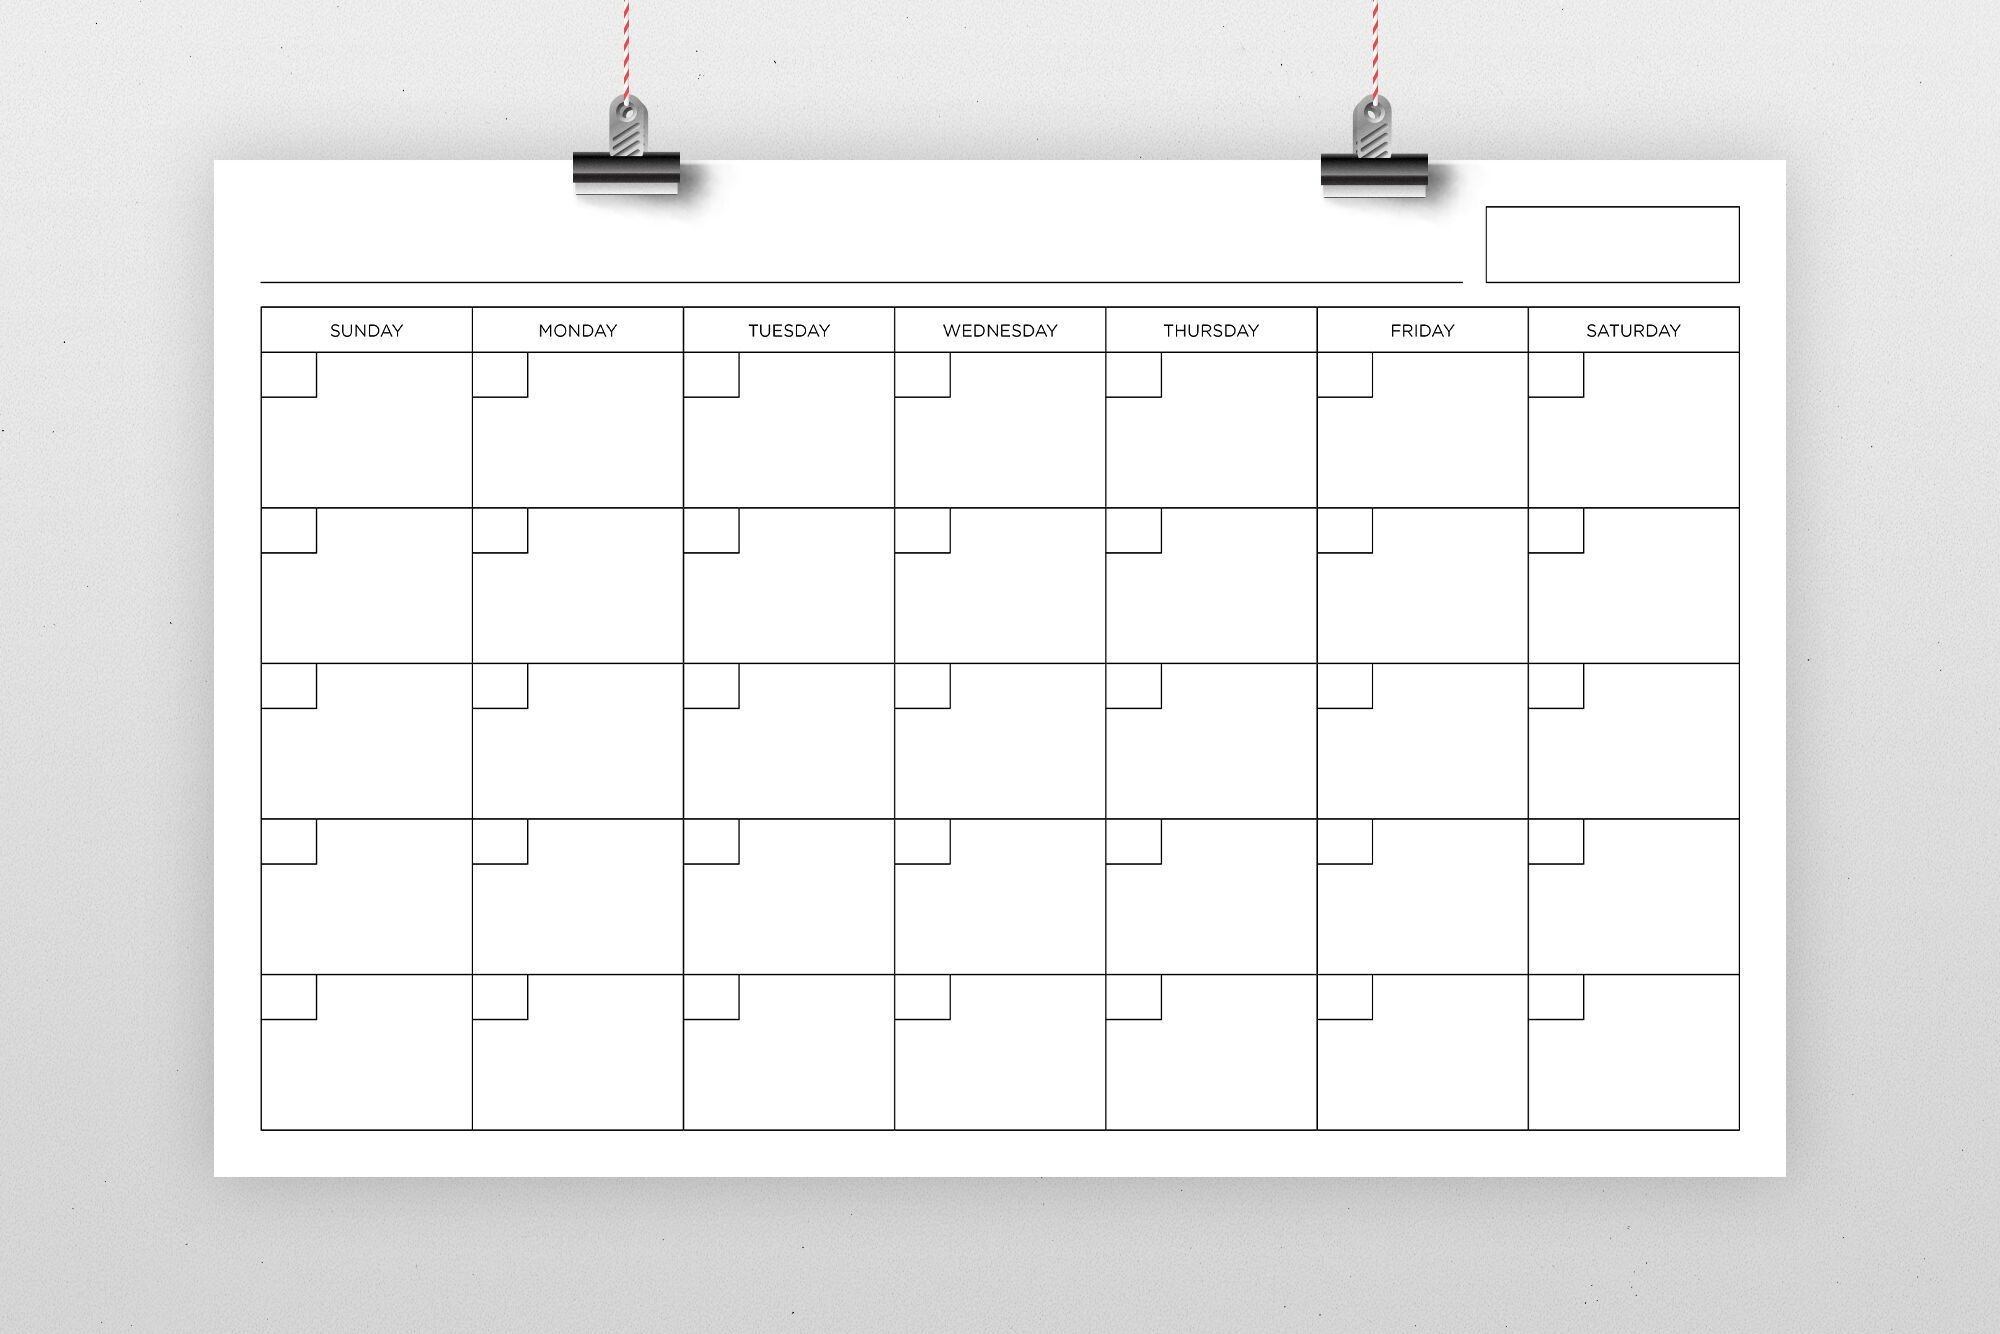 11X17 Inch Blank Calendar Page Template By Running With